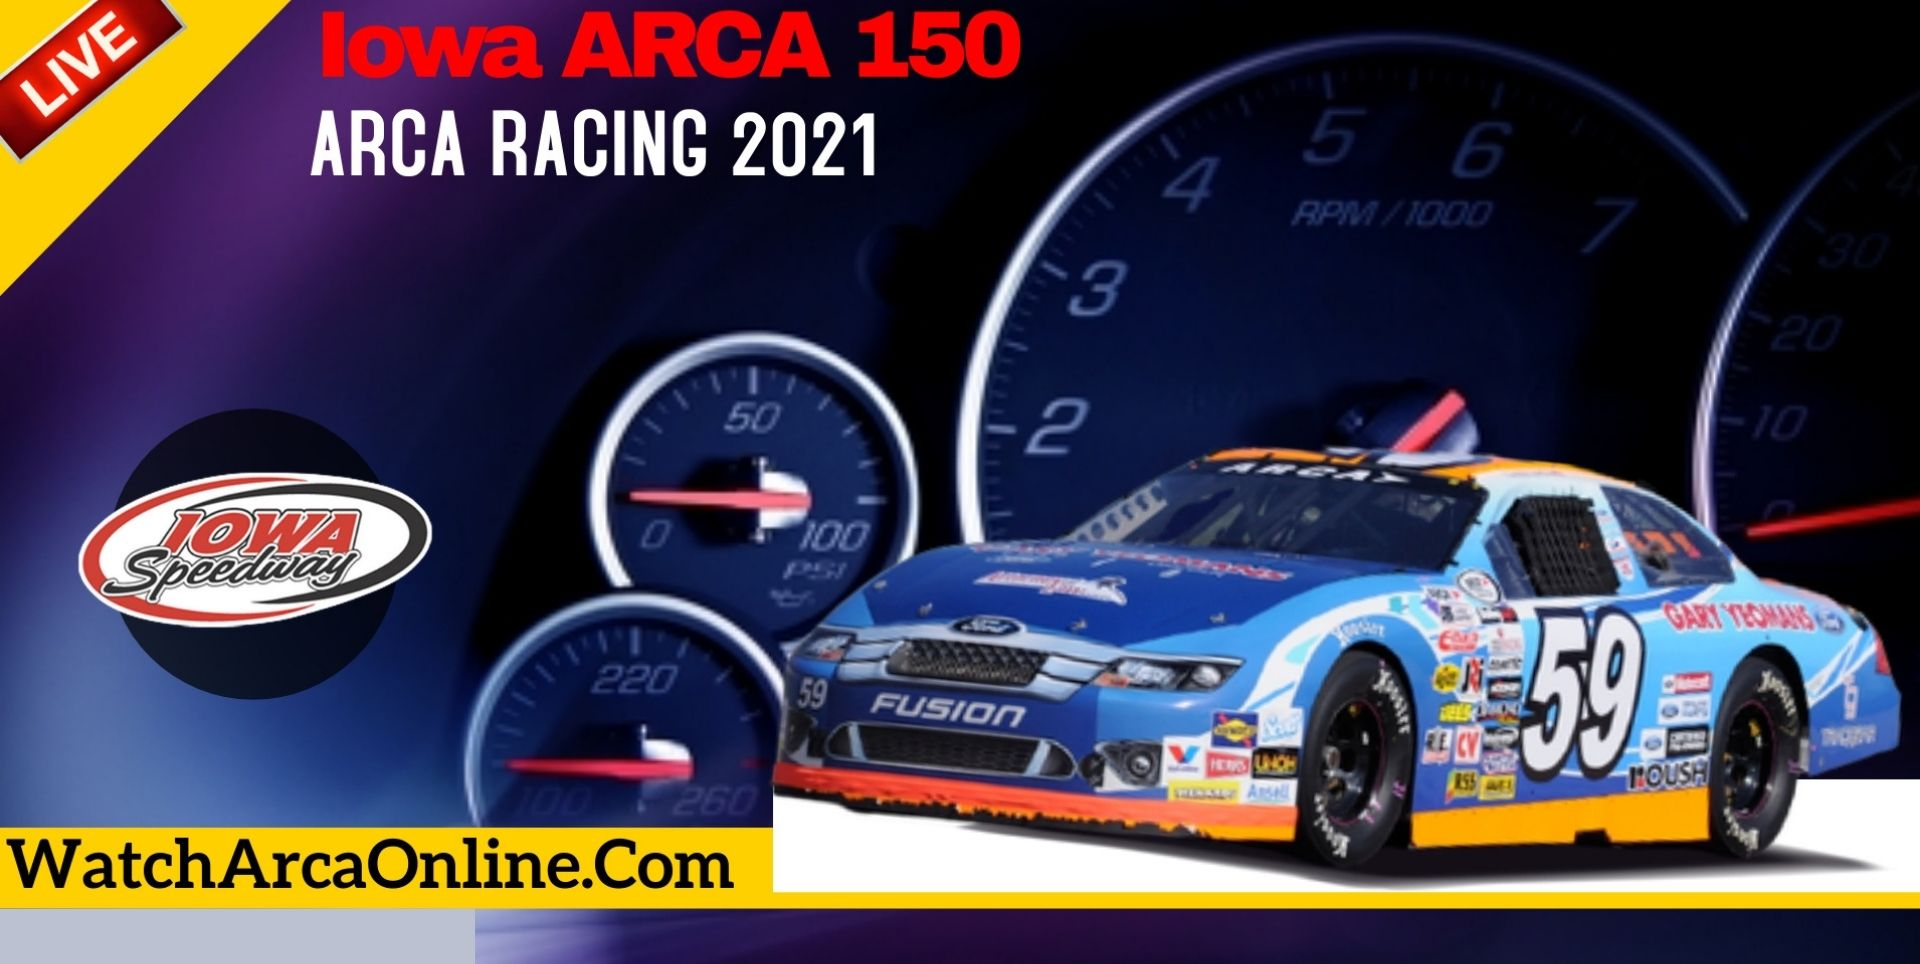 Iowa ARCA 150 Live Stream 2021 | Arca Racing